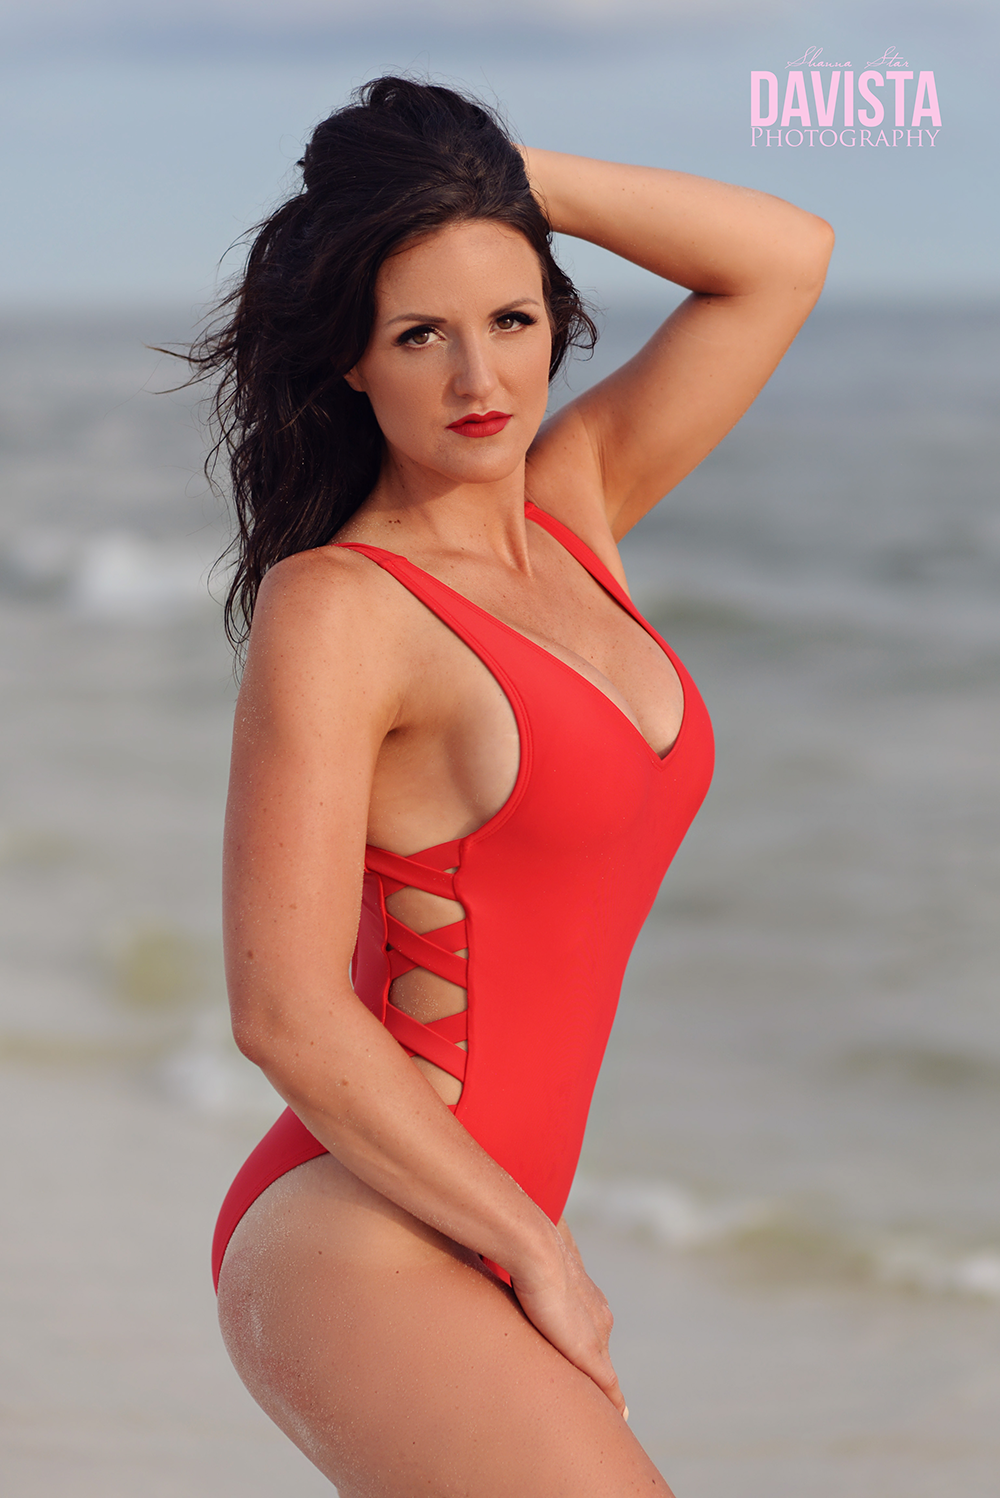 Florida beach boudoir photography